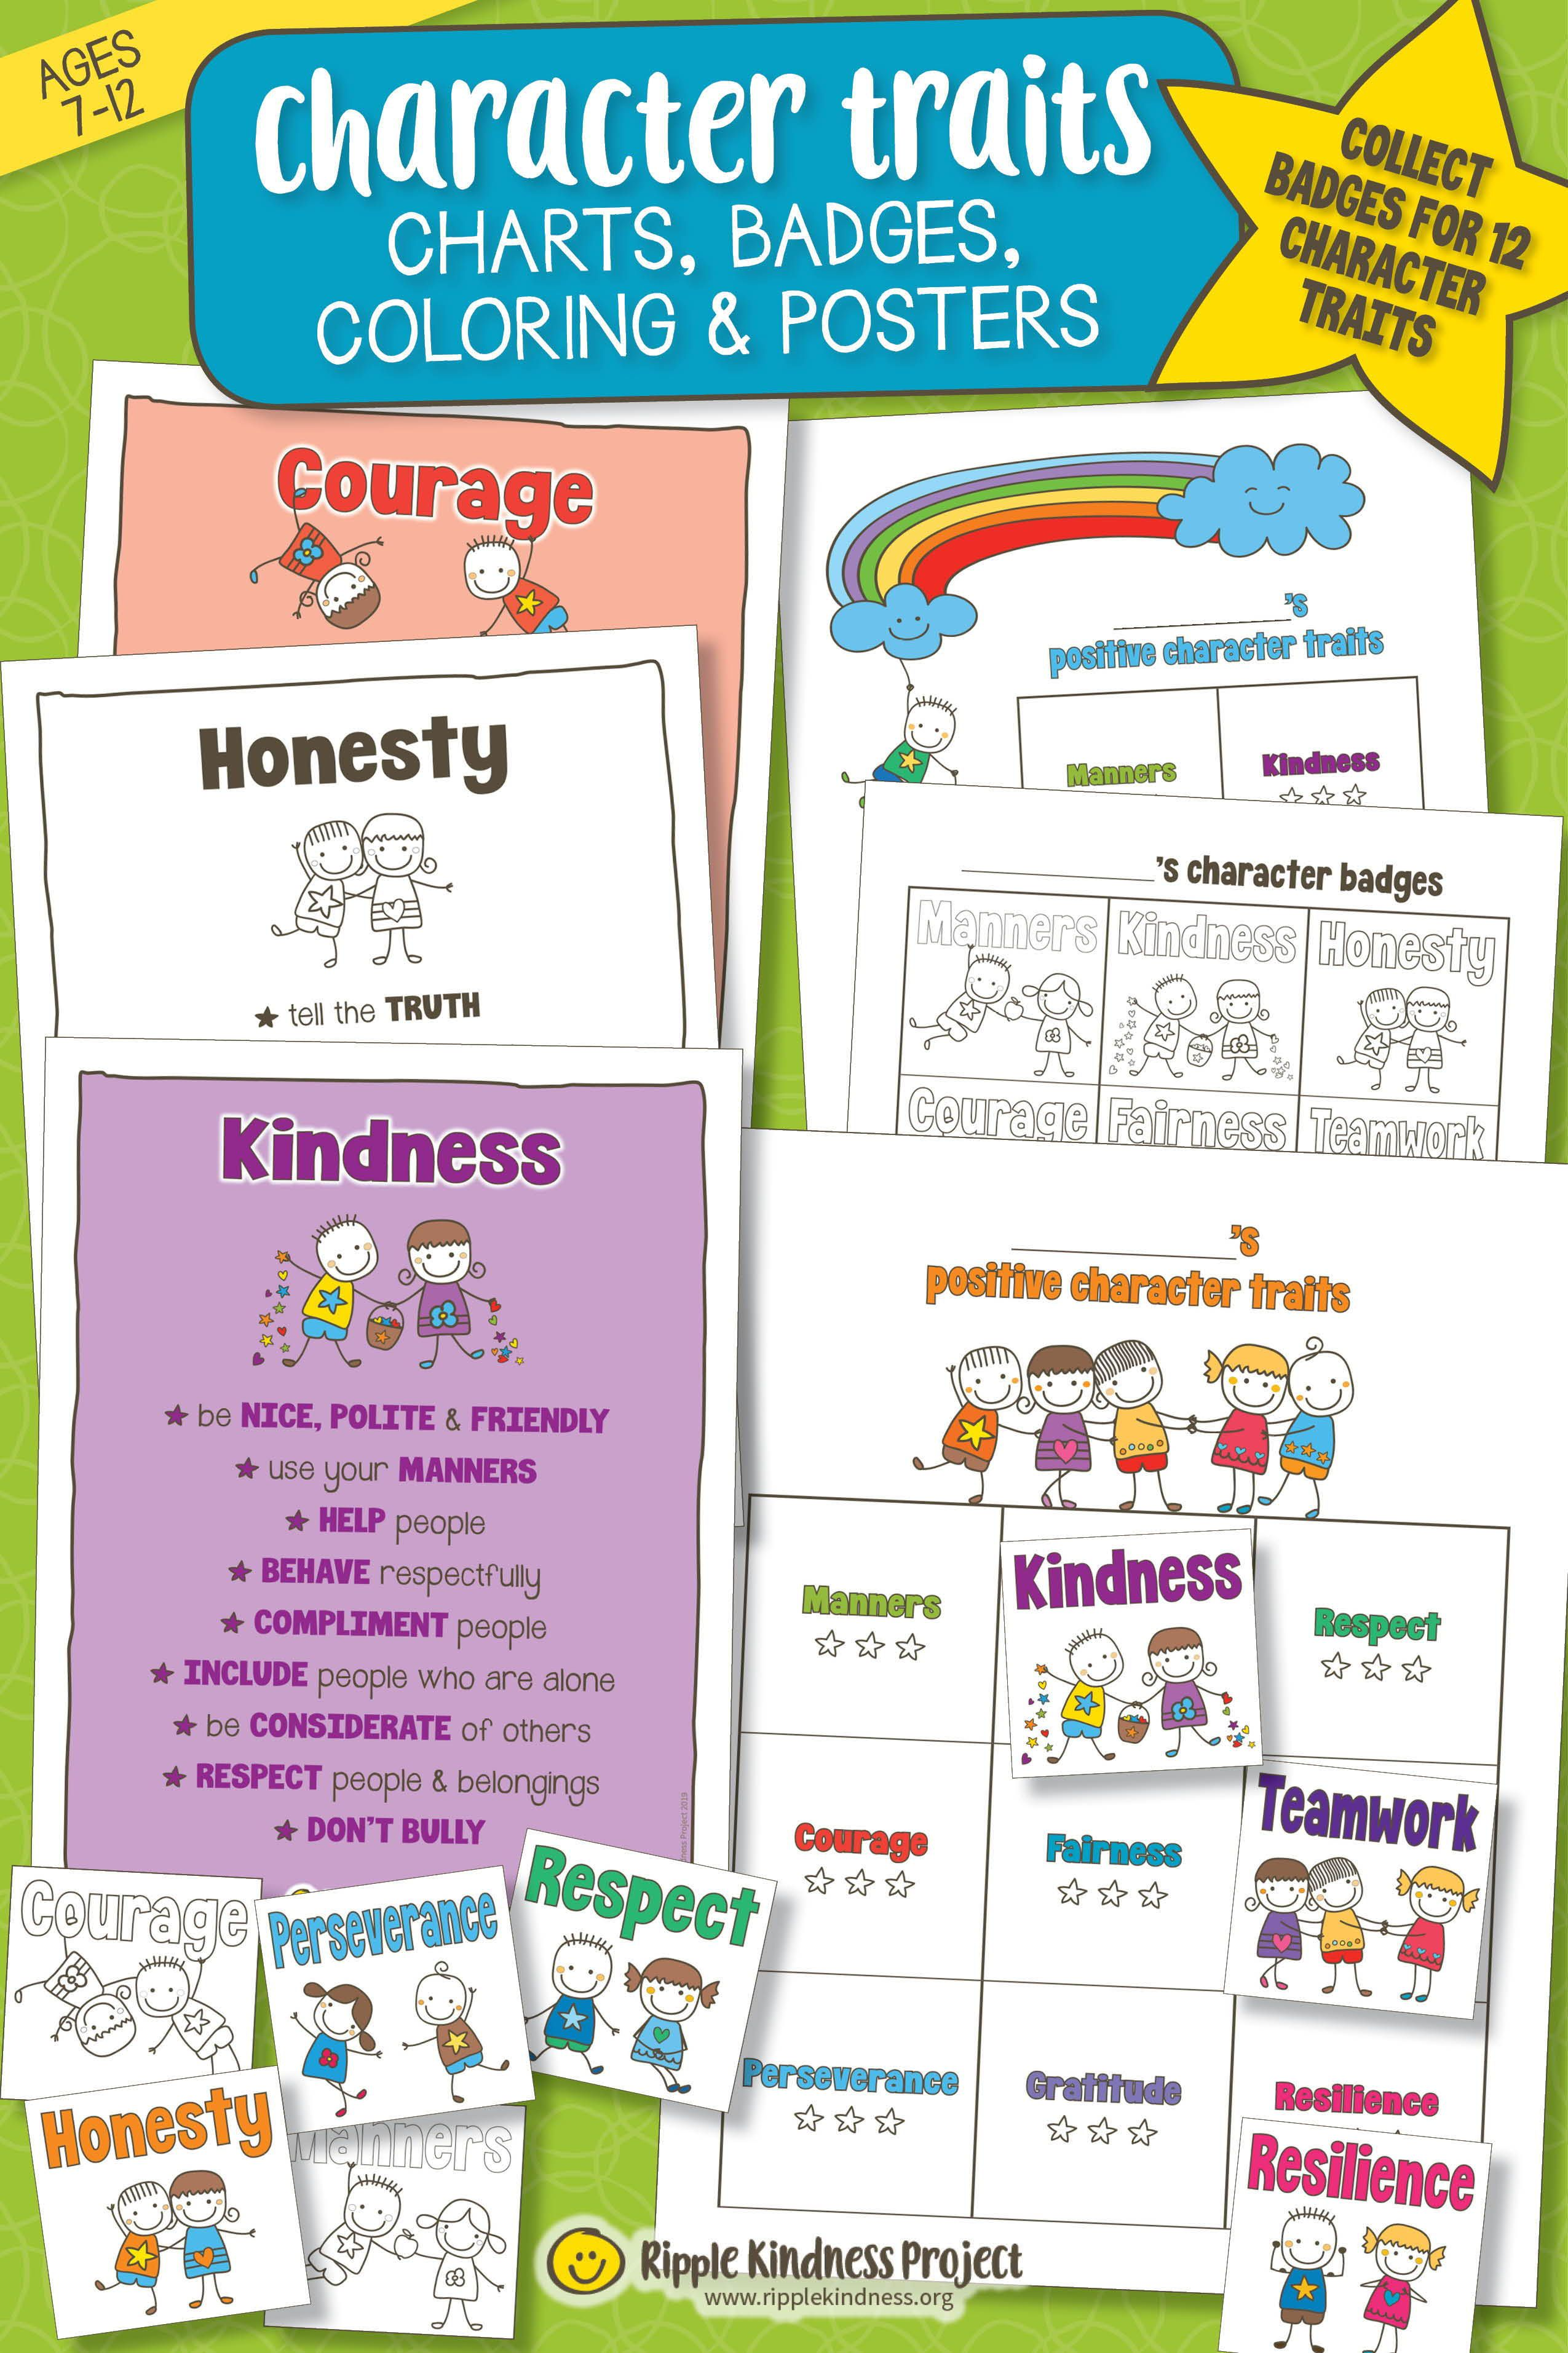 Character Traits Charts Badges Coloring And Posters